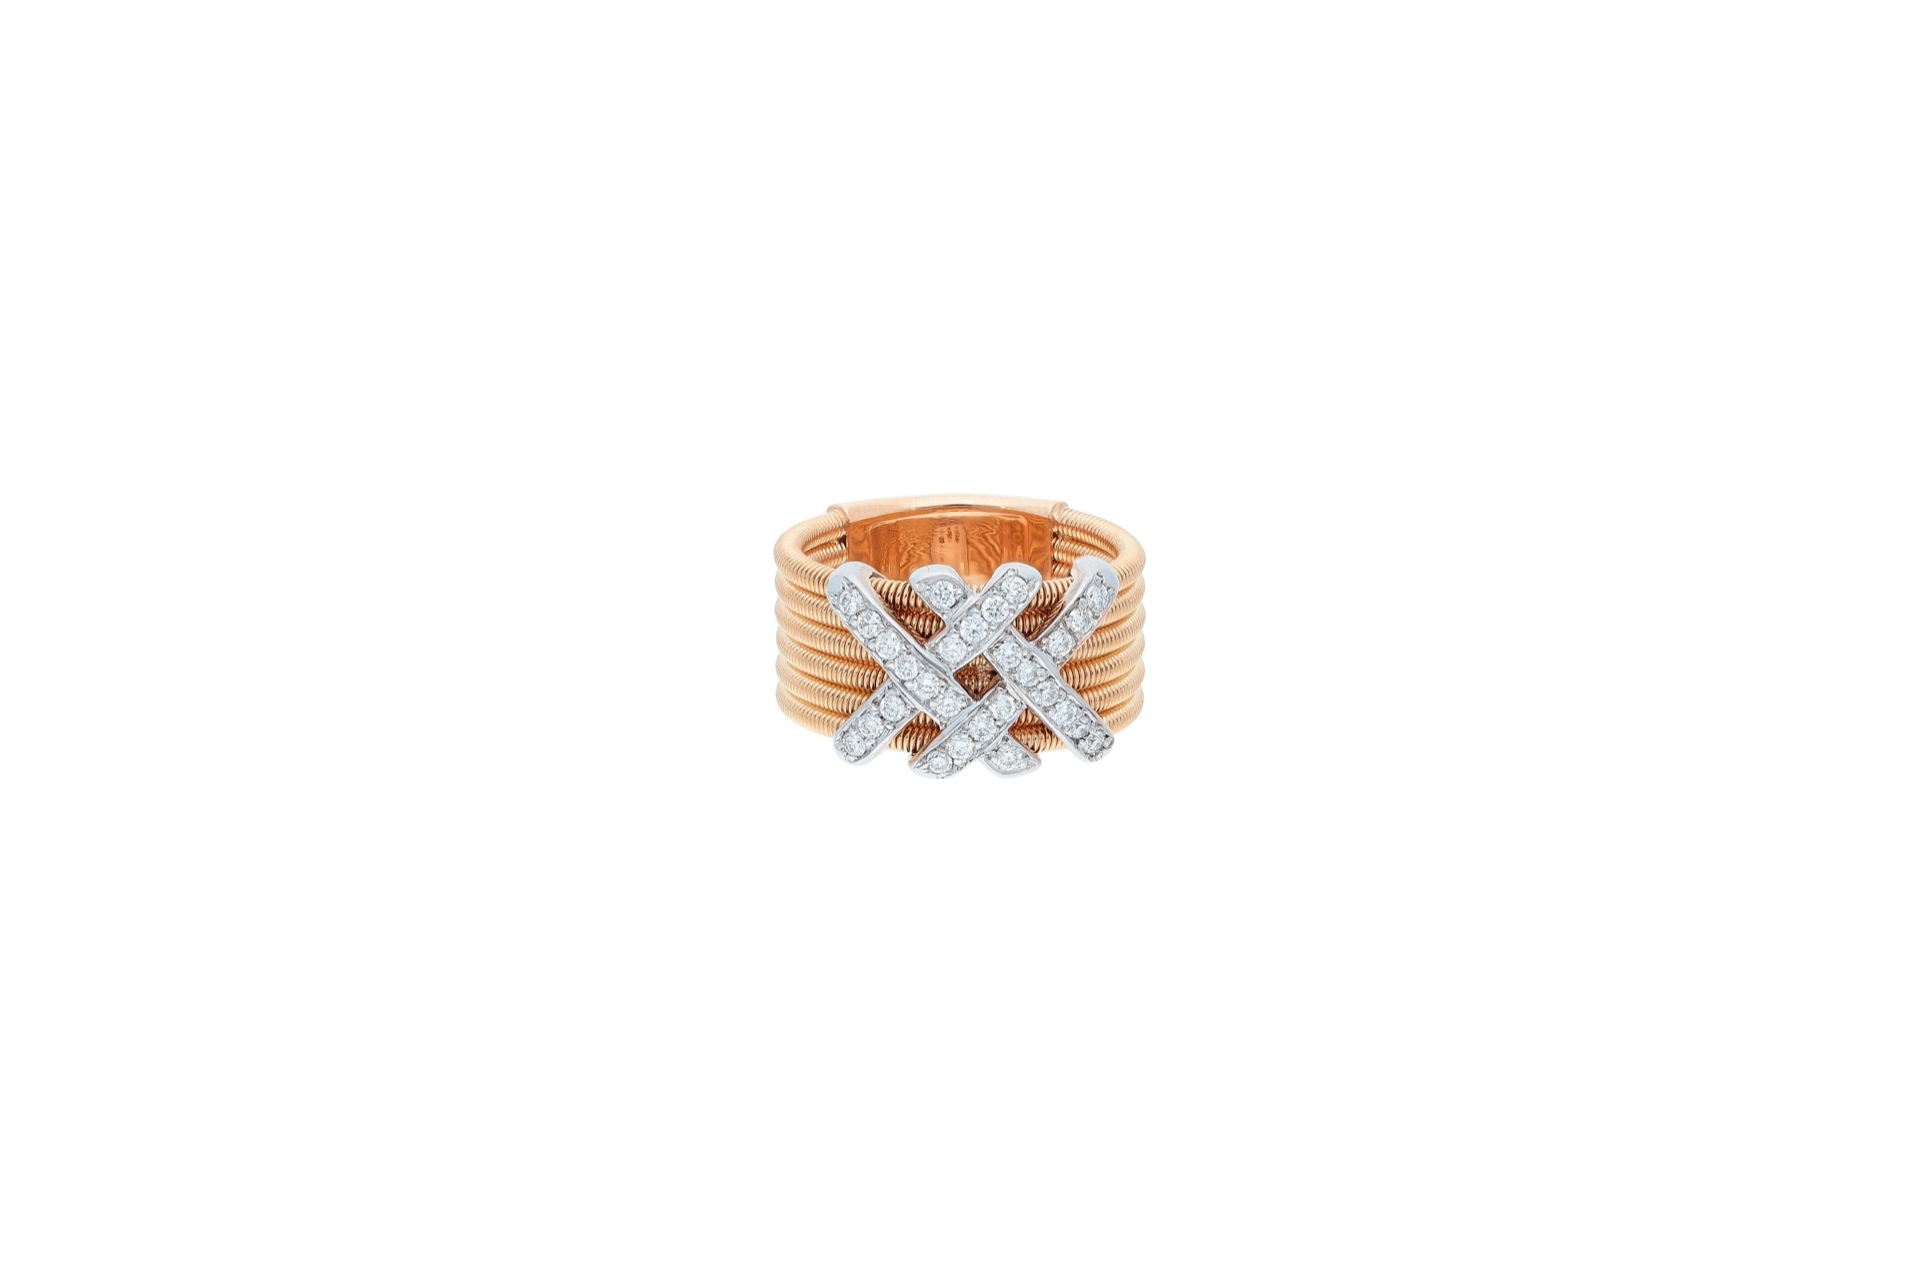 italian 18kt gold ring with diamonds